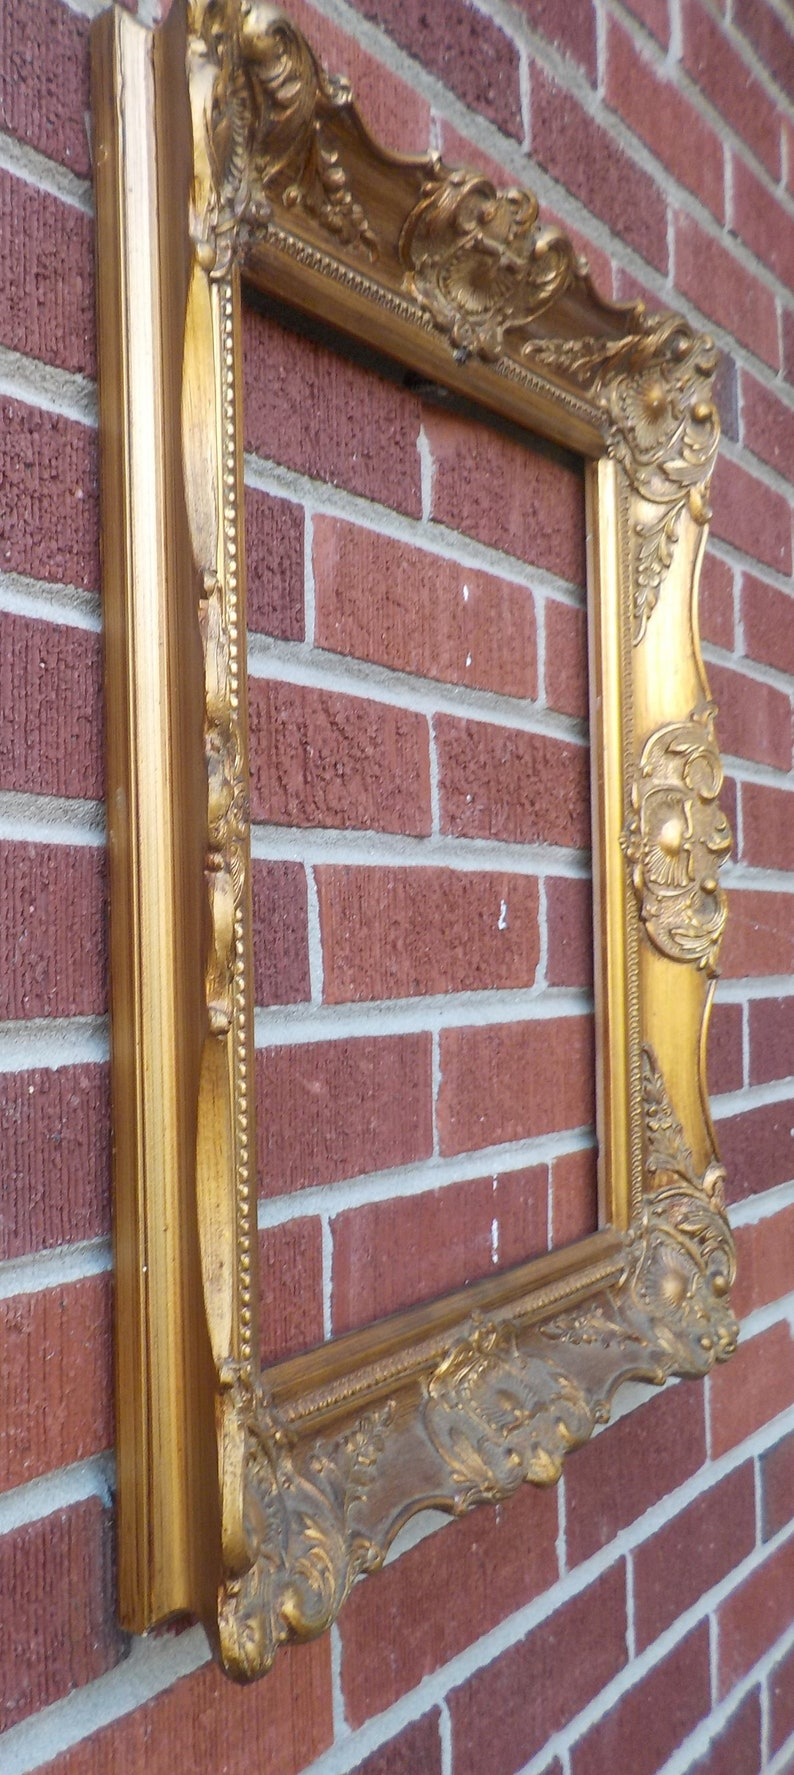 Vintage Retro FRENCH STYLE Louis GOLD Fancy Wood /& Compo Picture Frame 13 x 16 in fit c1970s